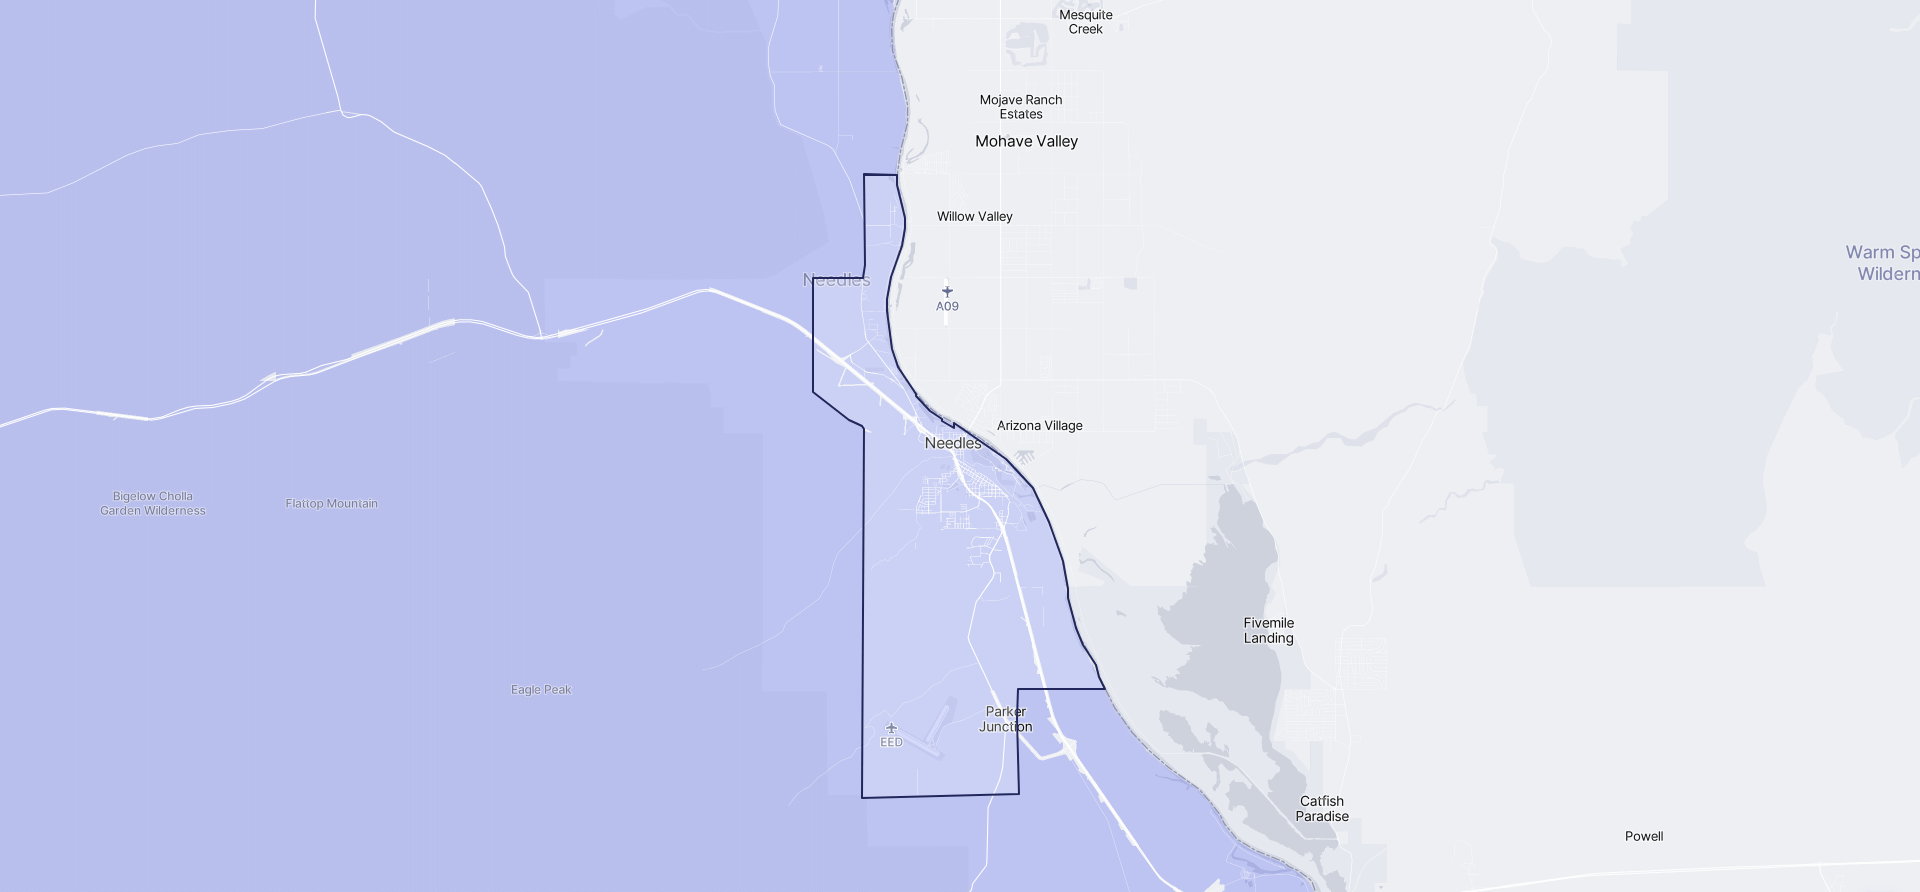 Image of Needles boundaries on a map.